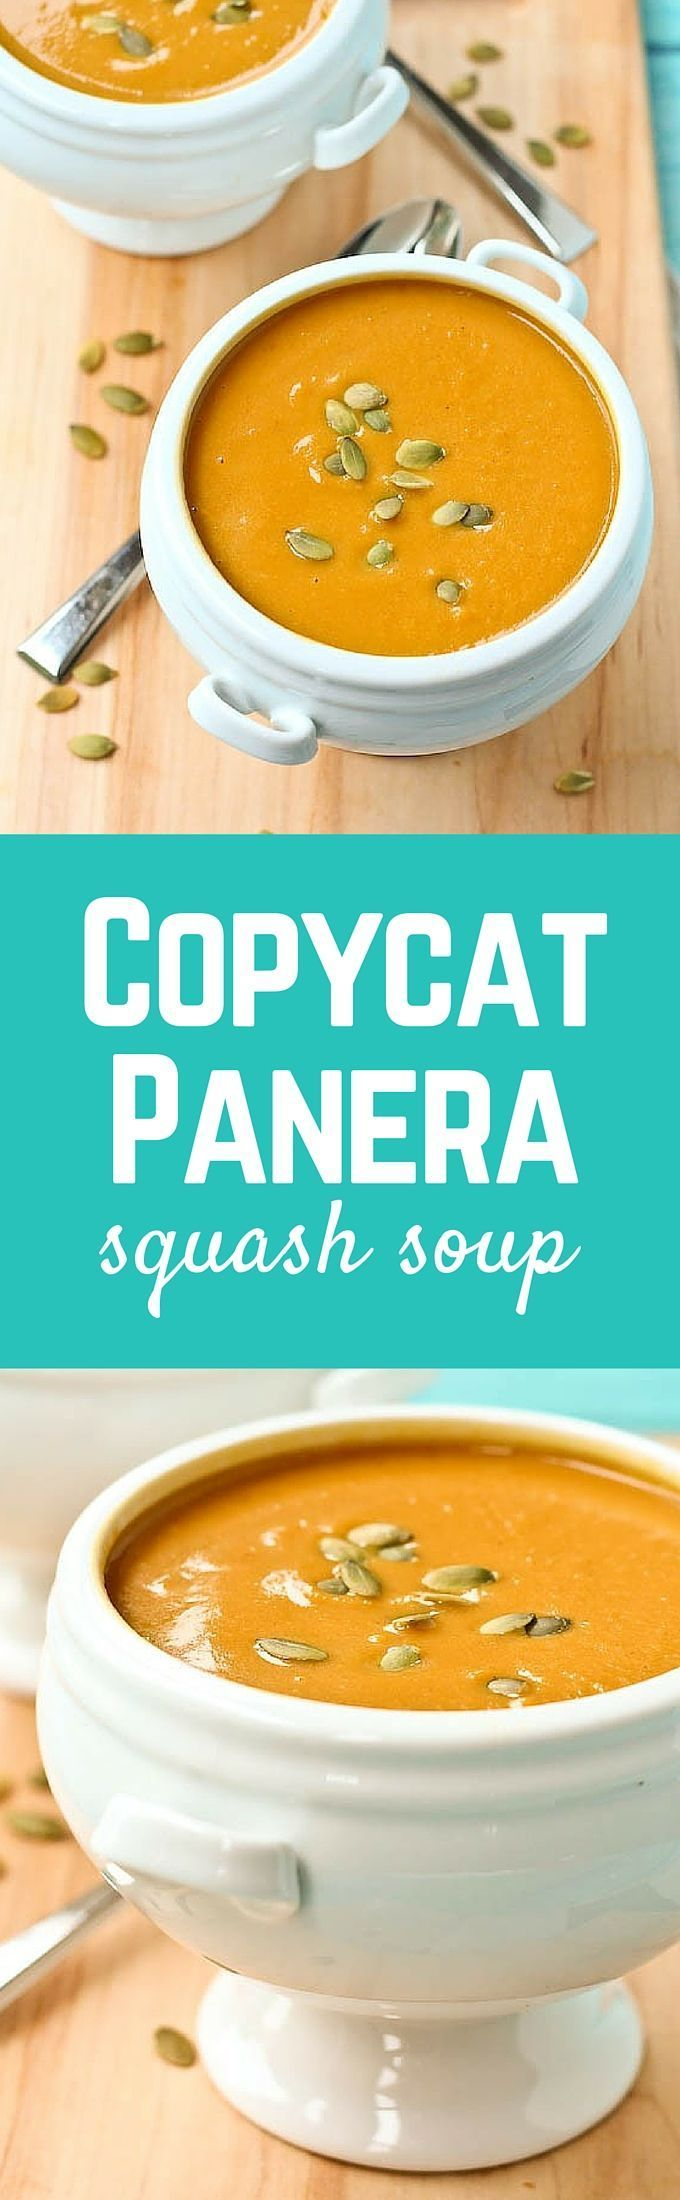 447 best Soups images on Pinterest | Kitchens, Cooking recipes and ...